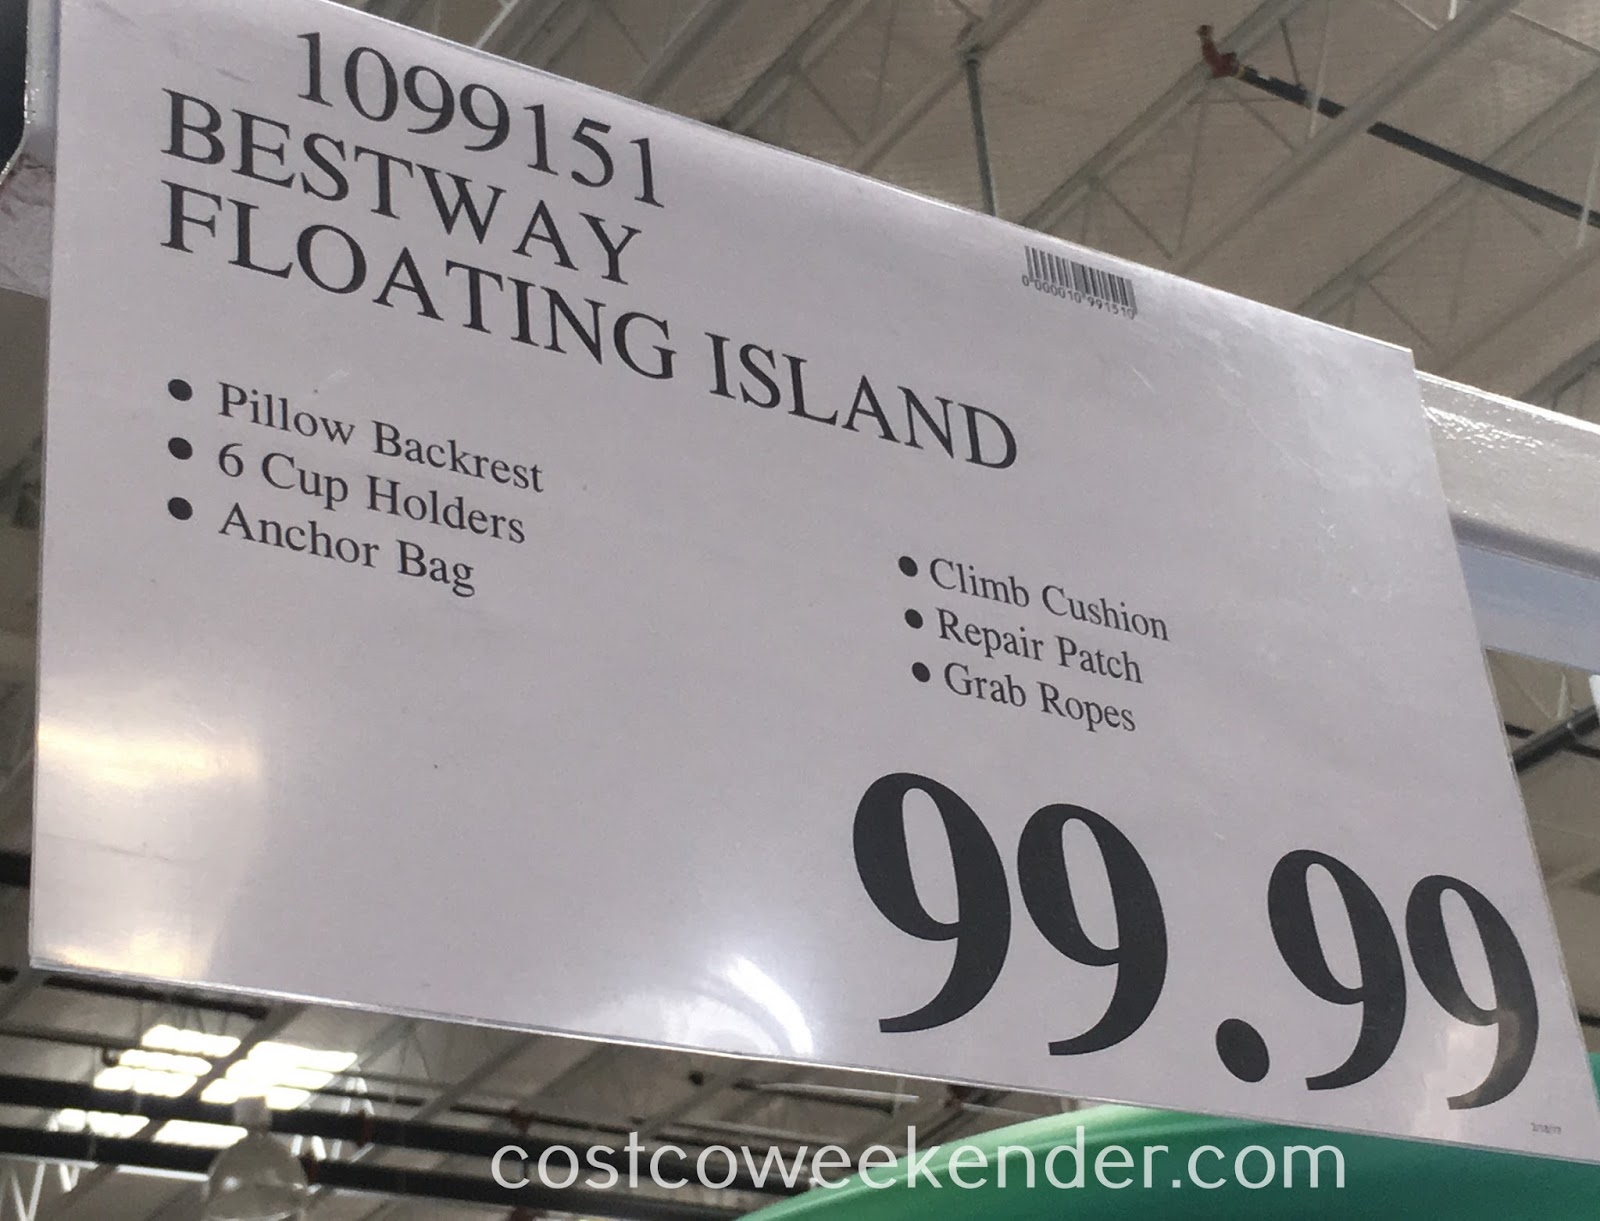 Costco 1099151 - Deal for the Bestway CoolerZ Blue Caribbean Island at Costco